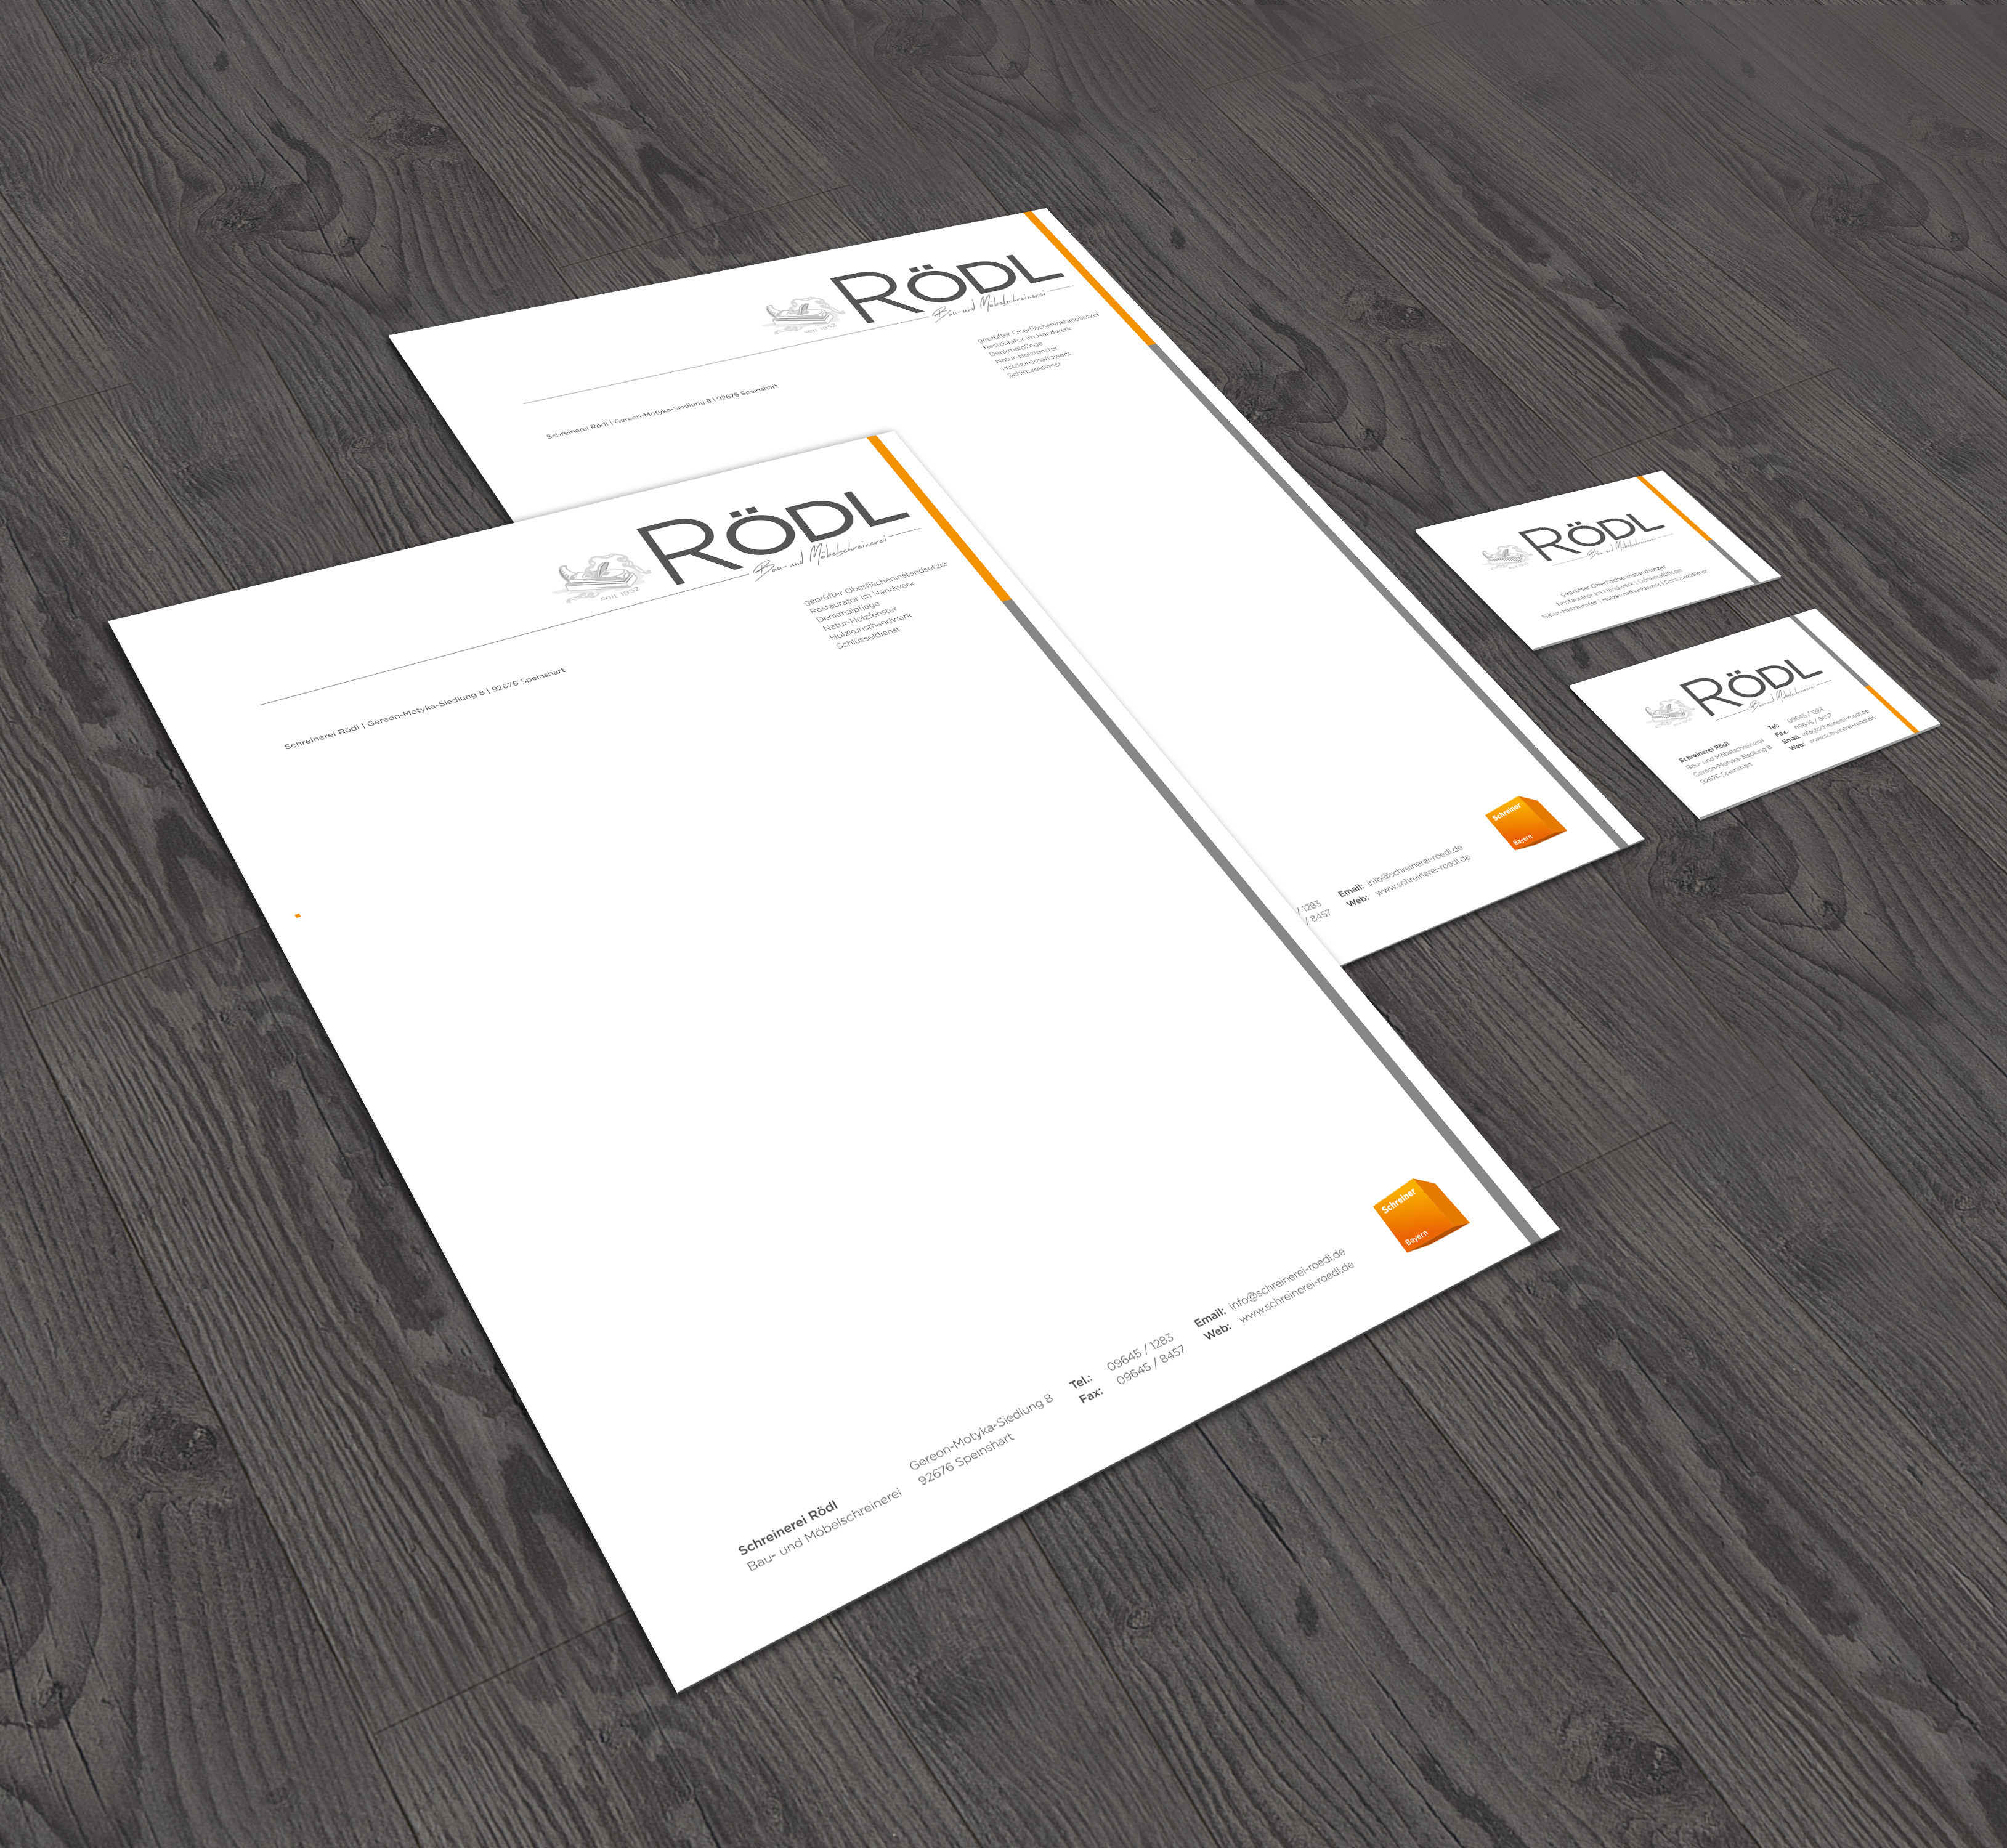 Corporate Design Schreinerei Rödl